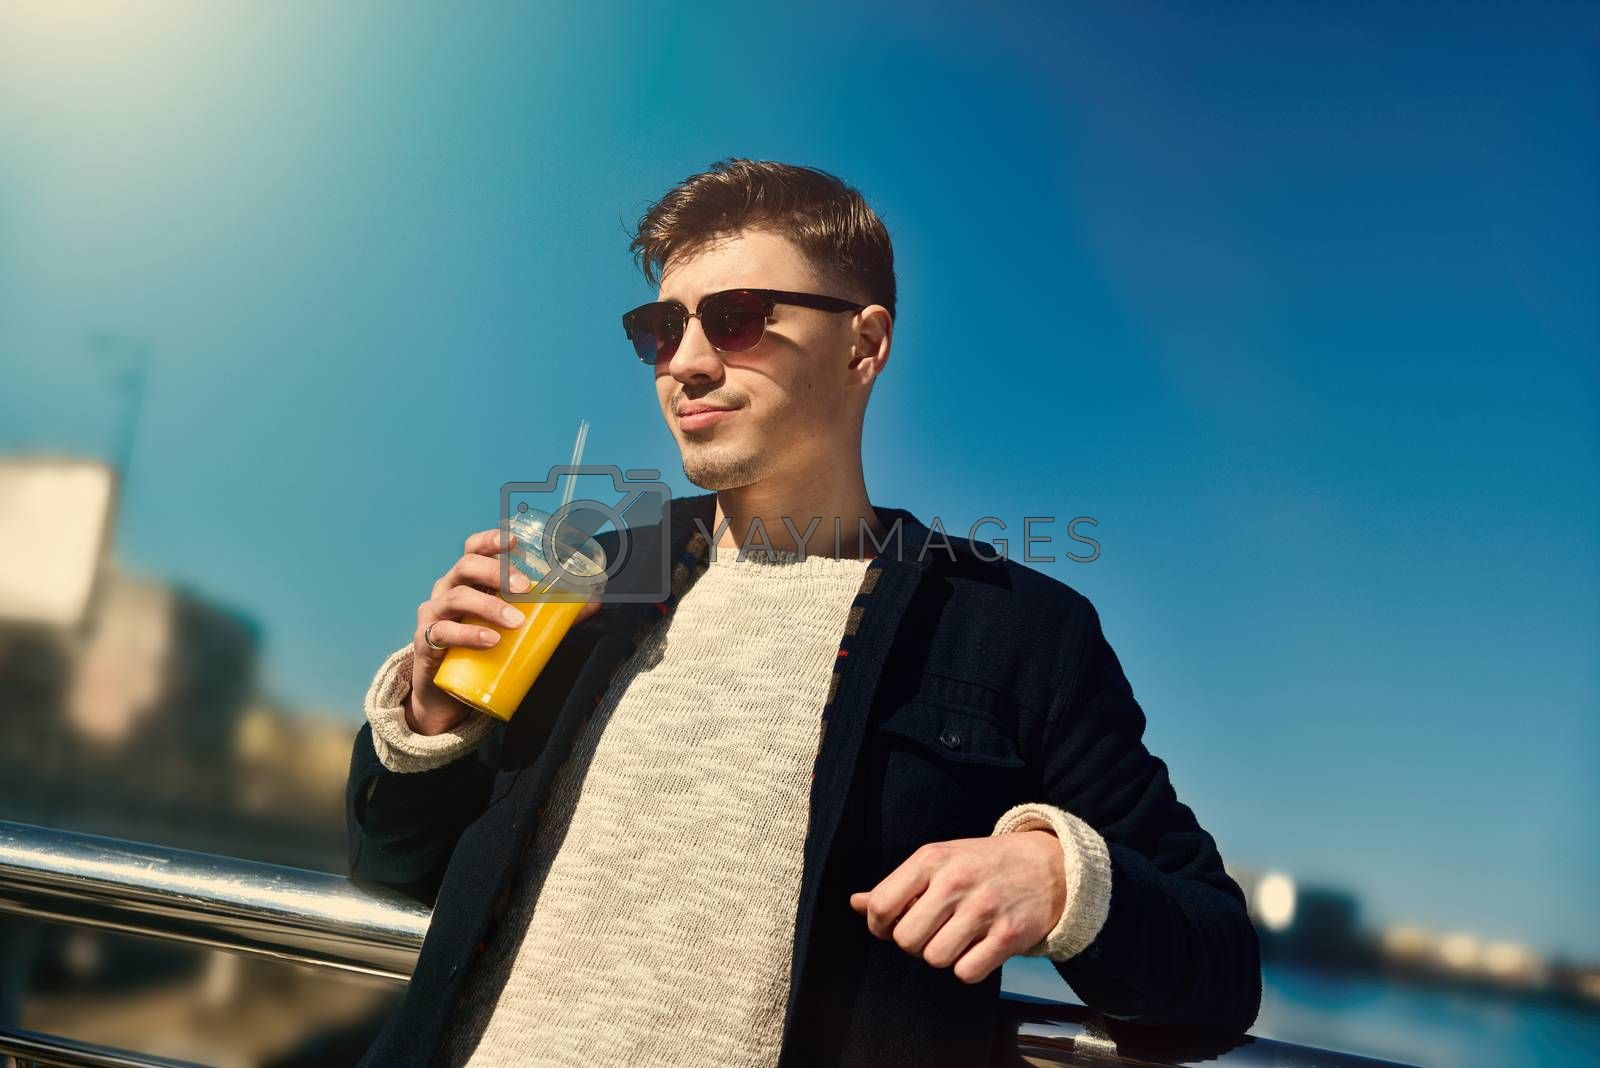 Cute guy with sunglasses holding juice at embankment